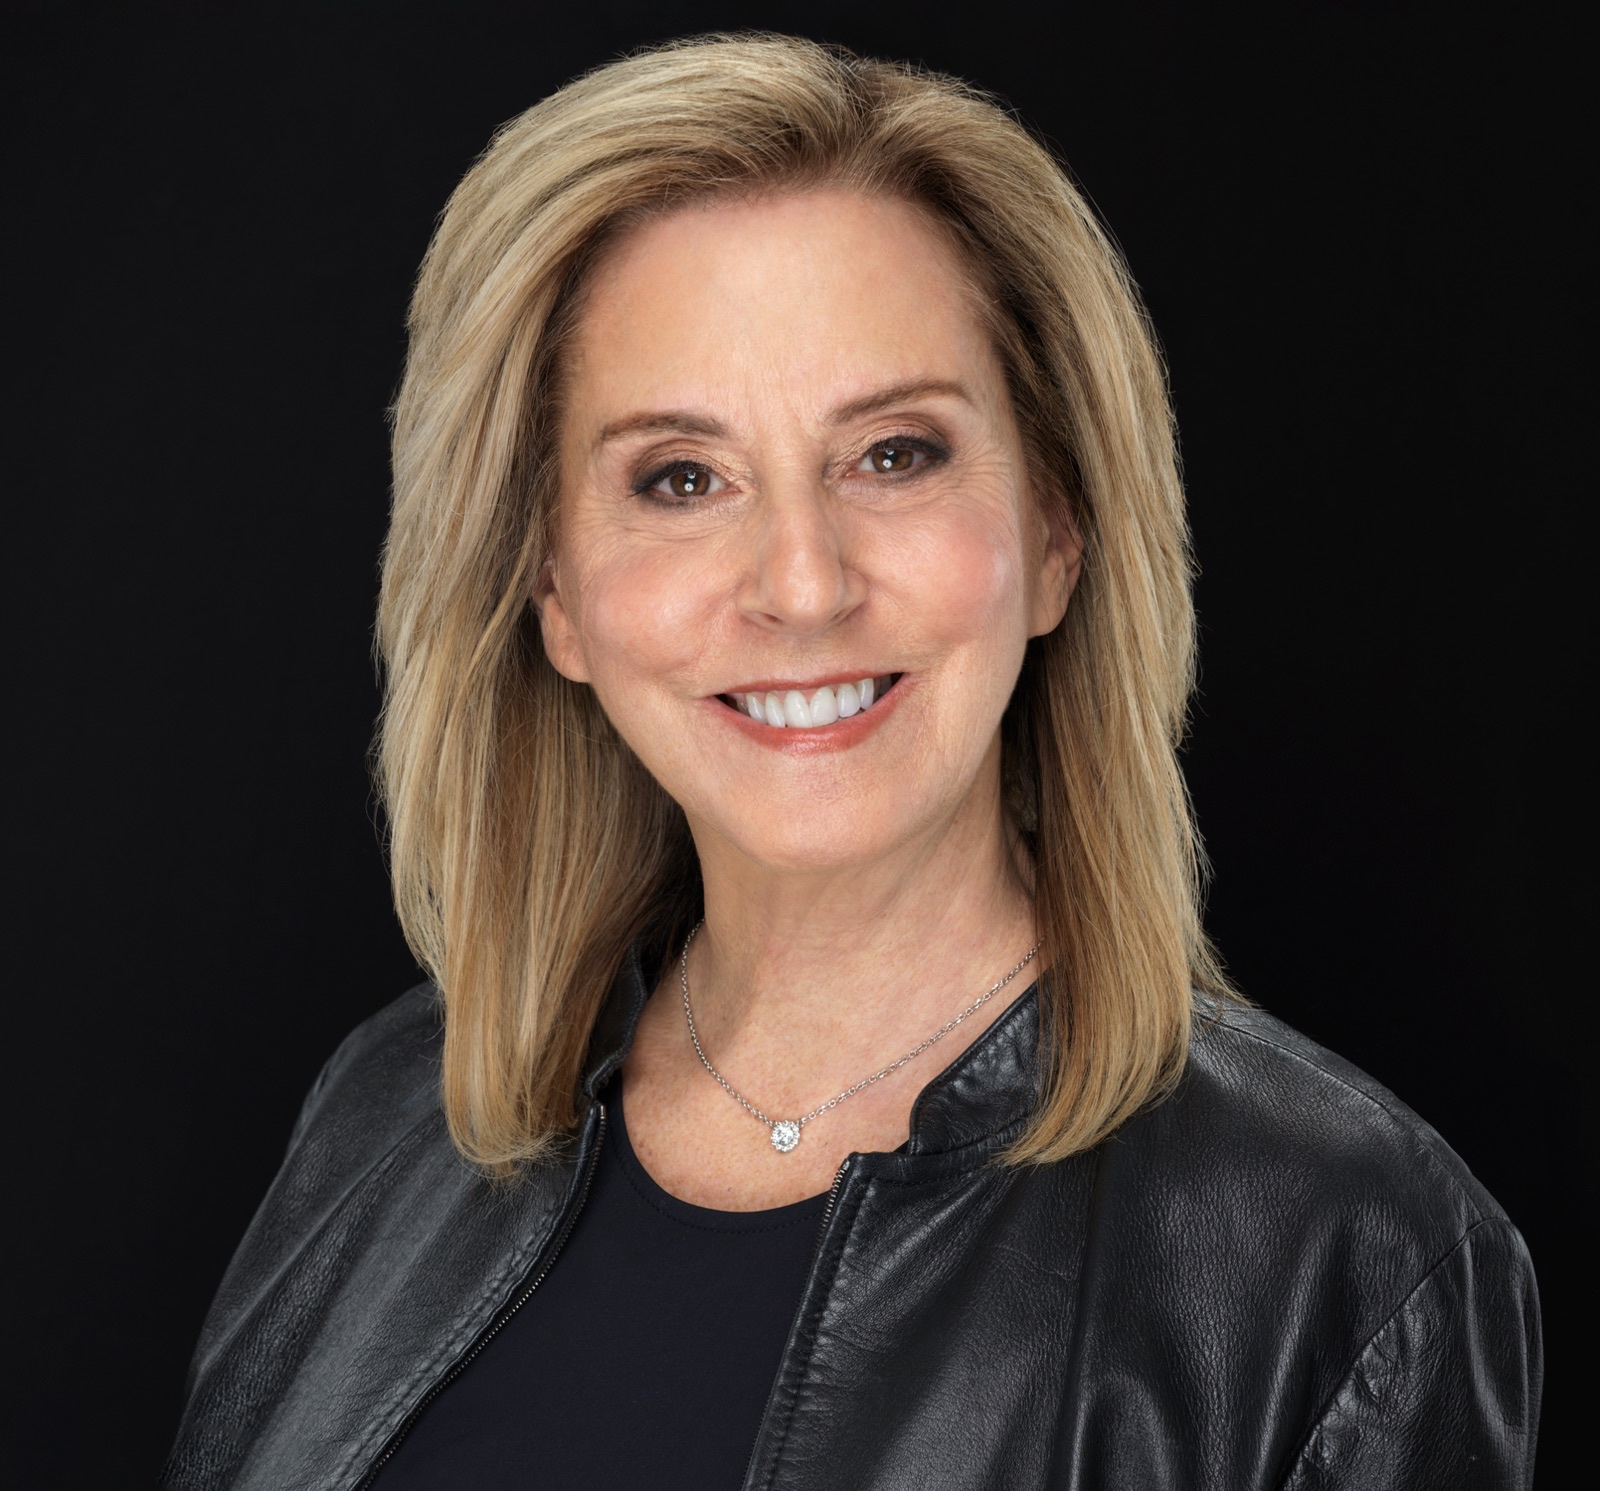 To learn a little more about The Pro Age Woman you can listen to the Generation Jones Podcast below. I was interviewed by the wonderful Wendi Cooper on all things aging.